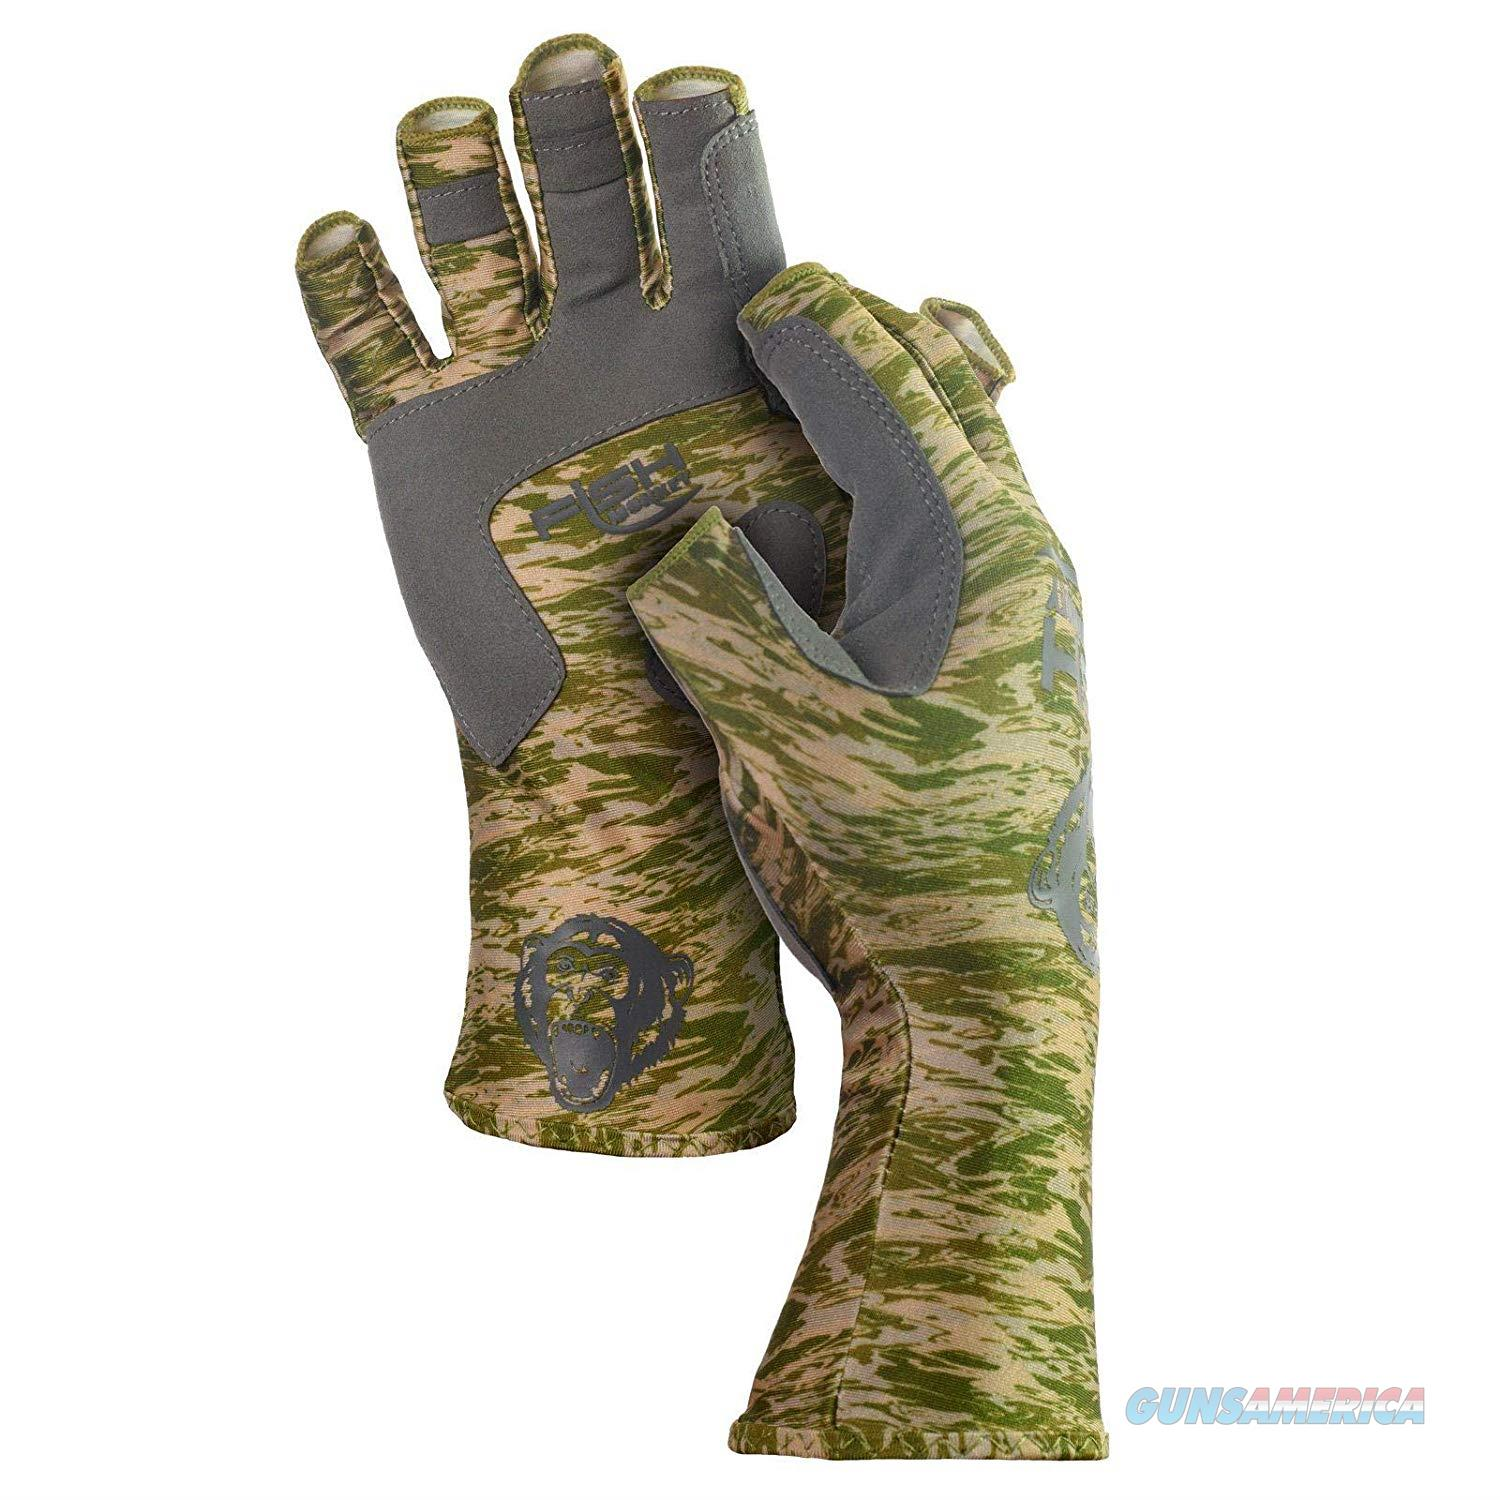 Fish Monkey Half Finger Guide Glove Green LG  Non-Guns > Hunting Clothing and Equipment > Clothing > Gloves